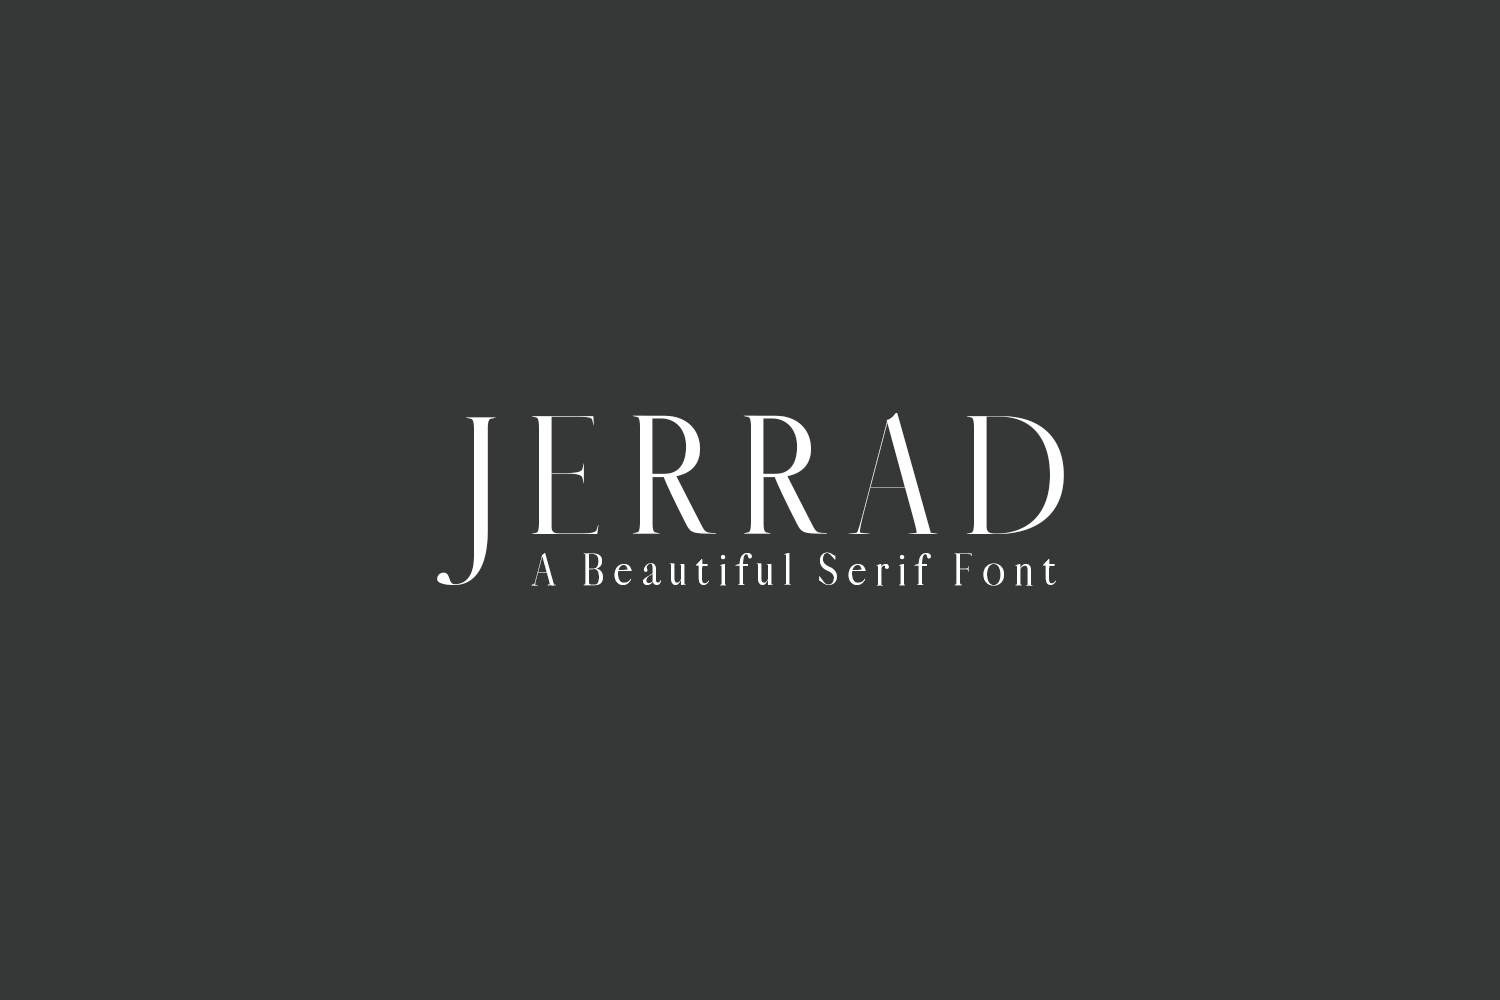 Jerrad Beautiful Serif Font Family example image 1